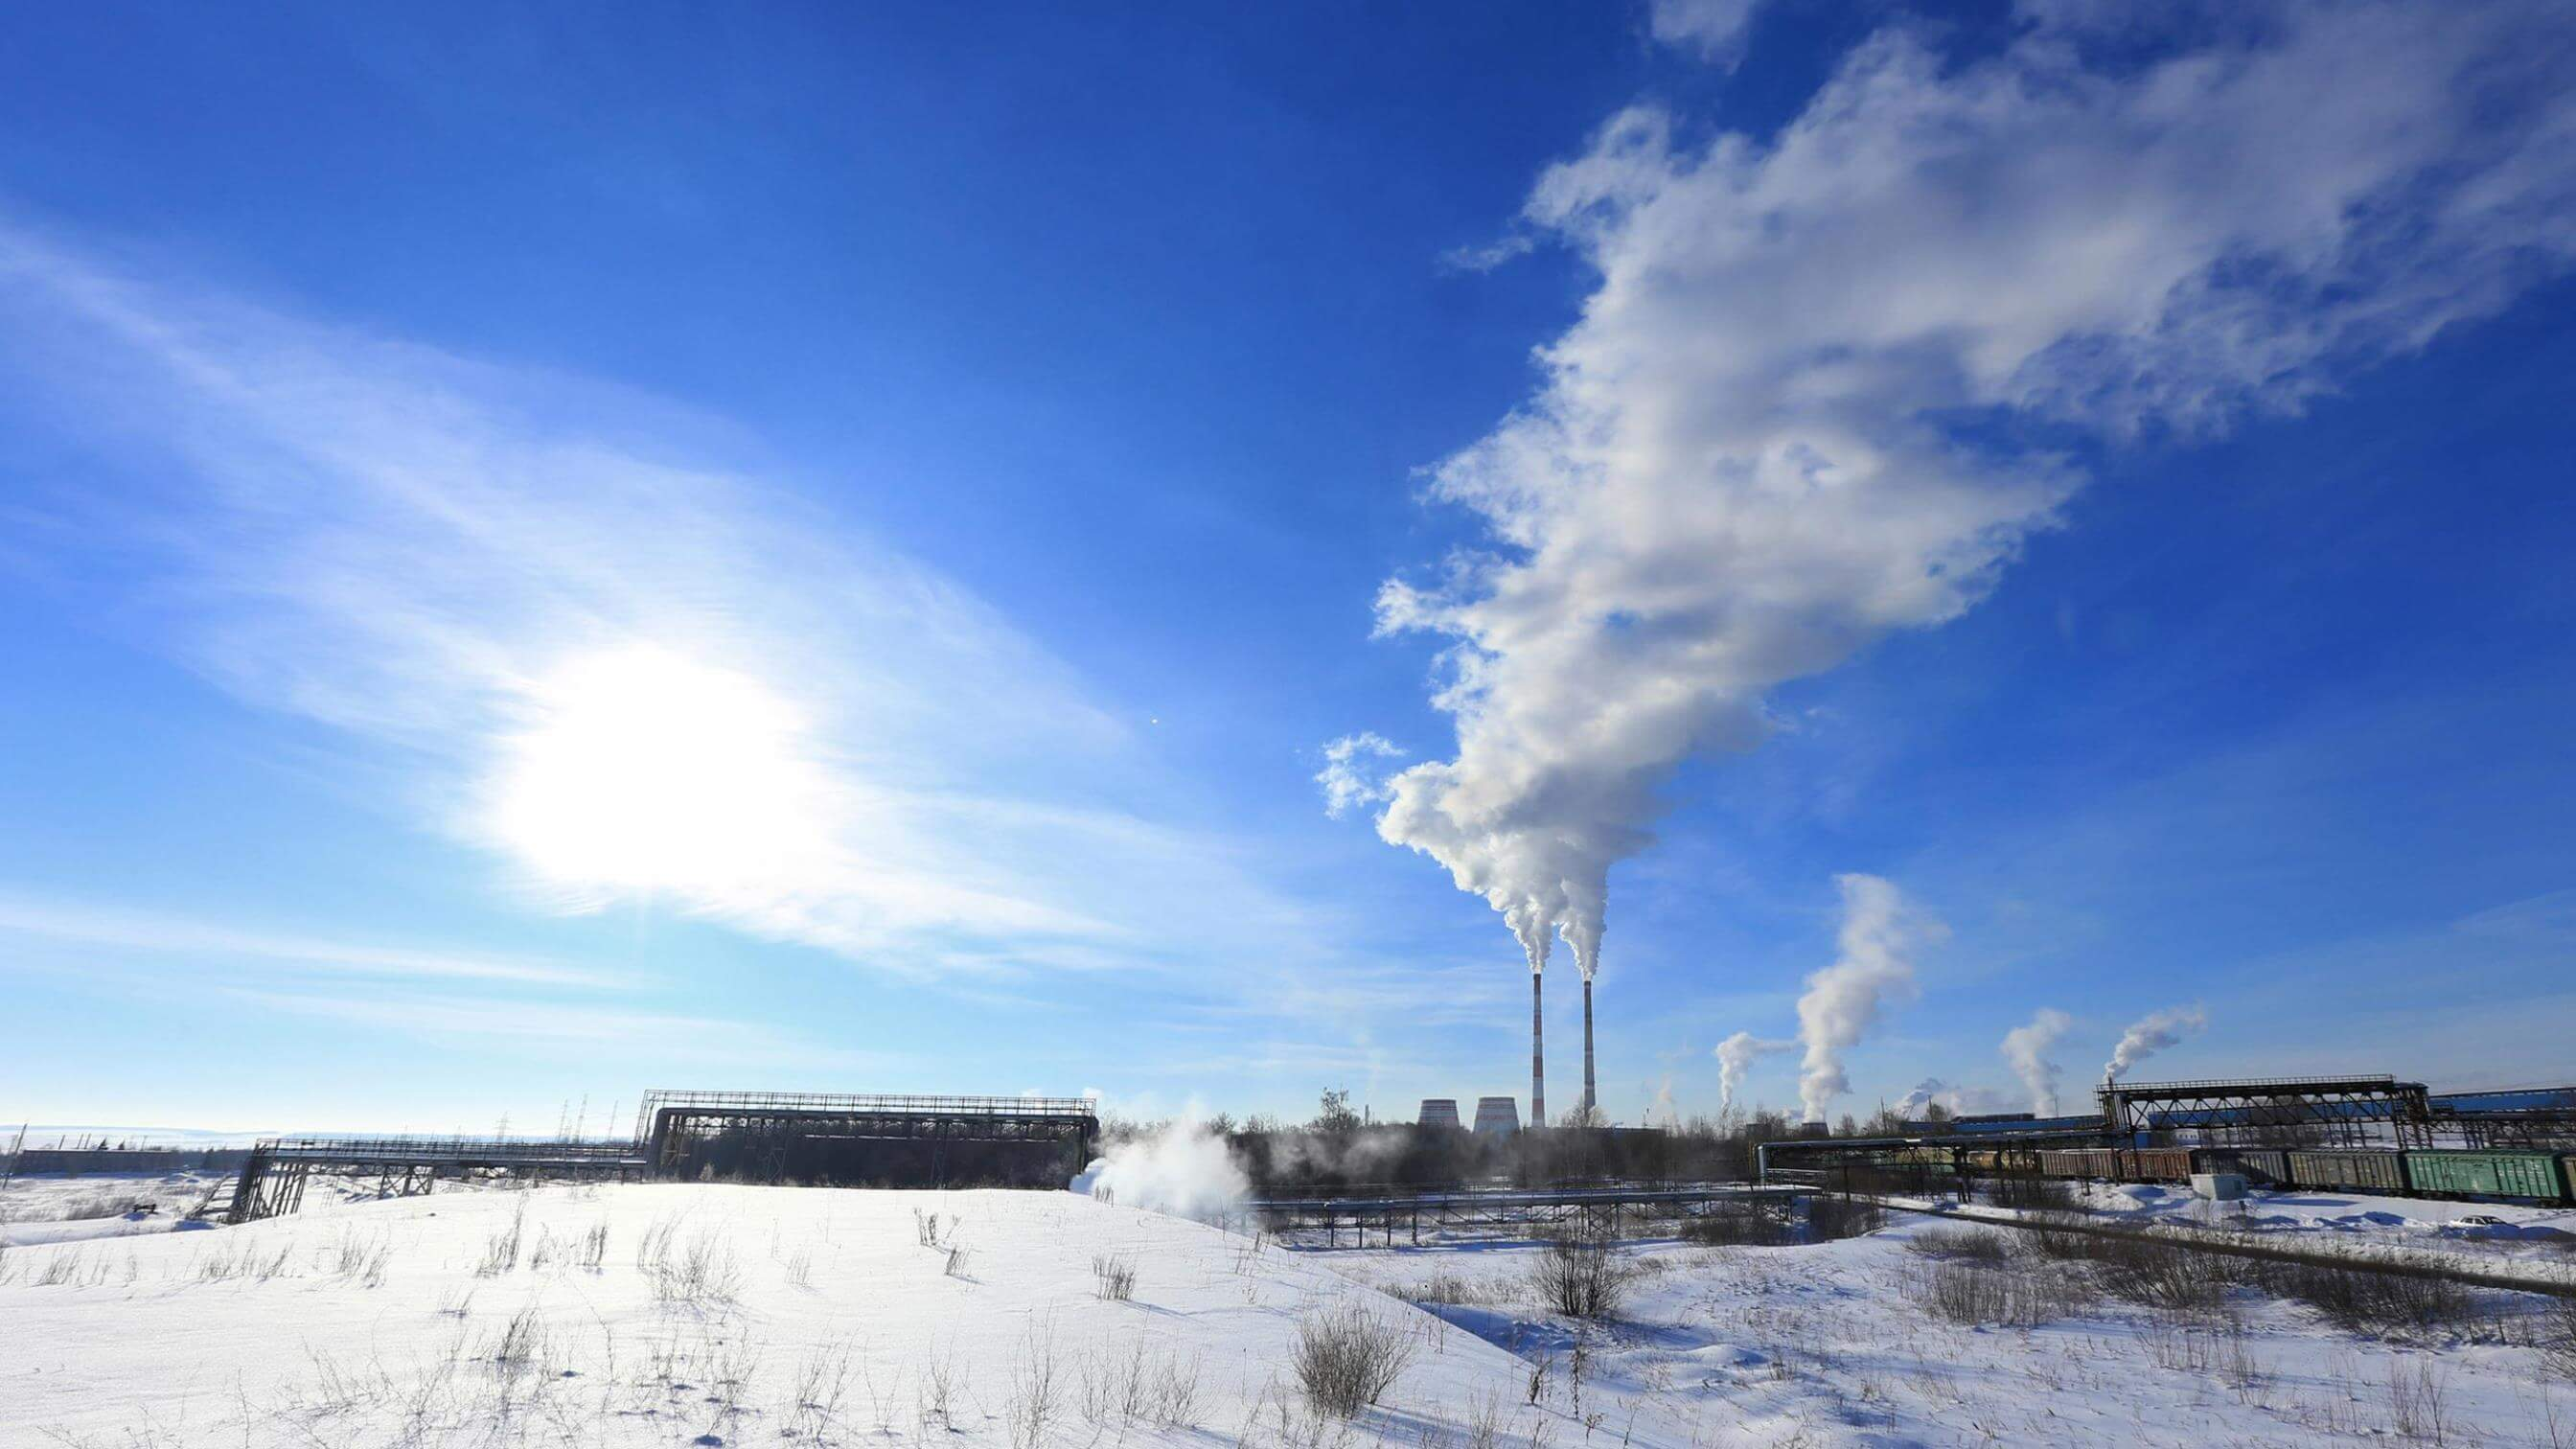 Frozen landscape with oil sands plant and chimneys